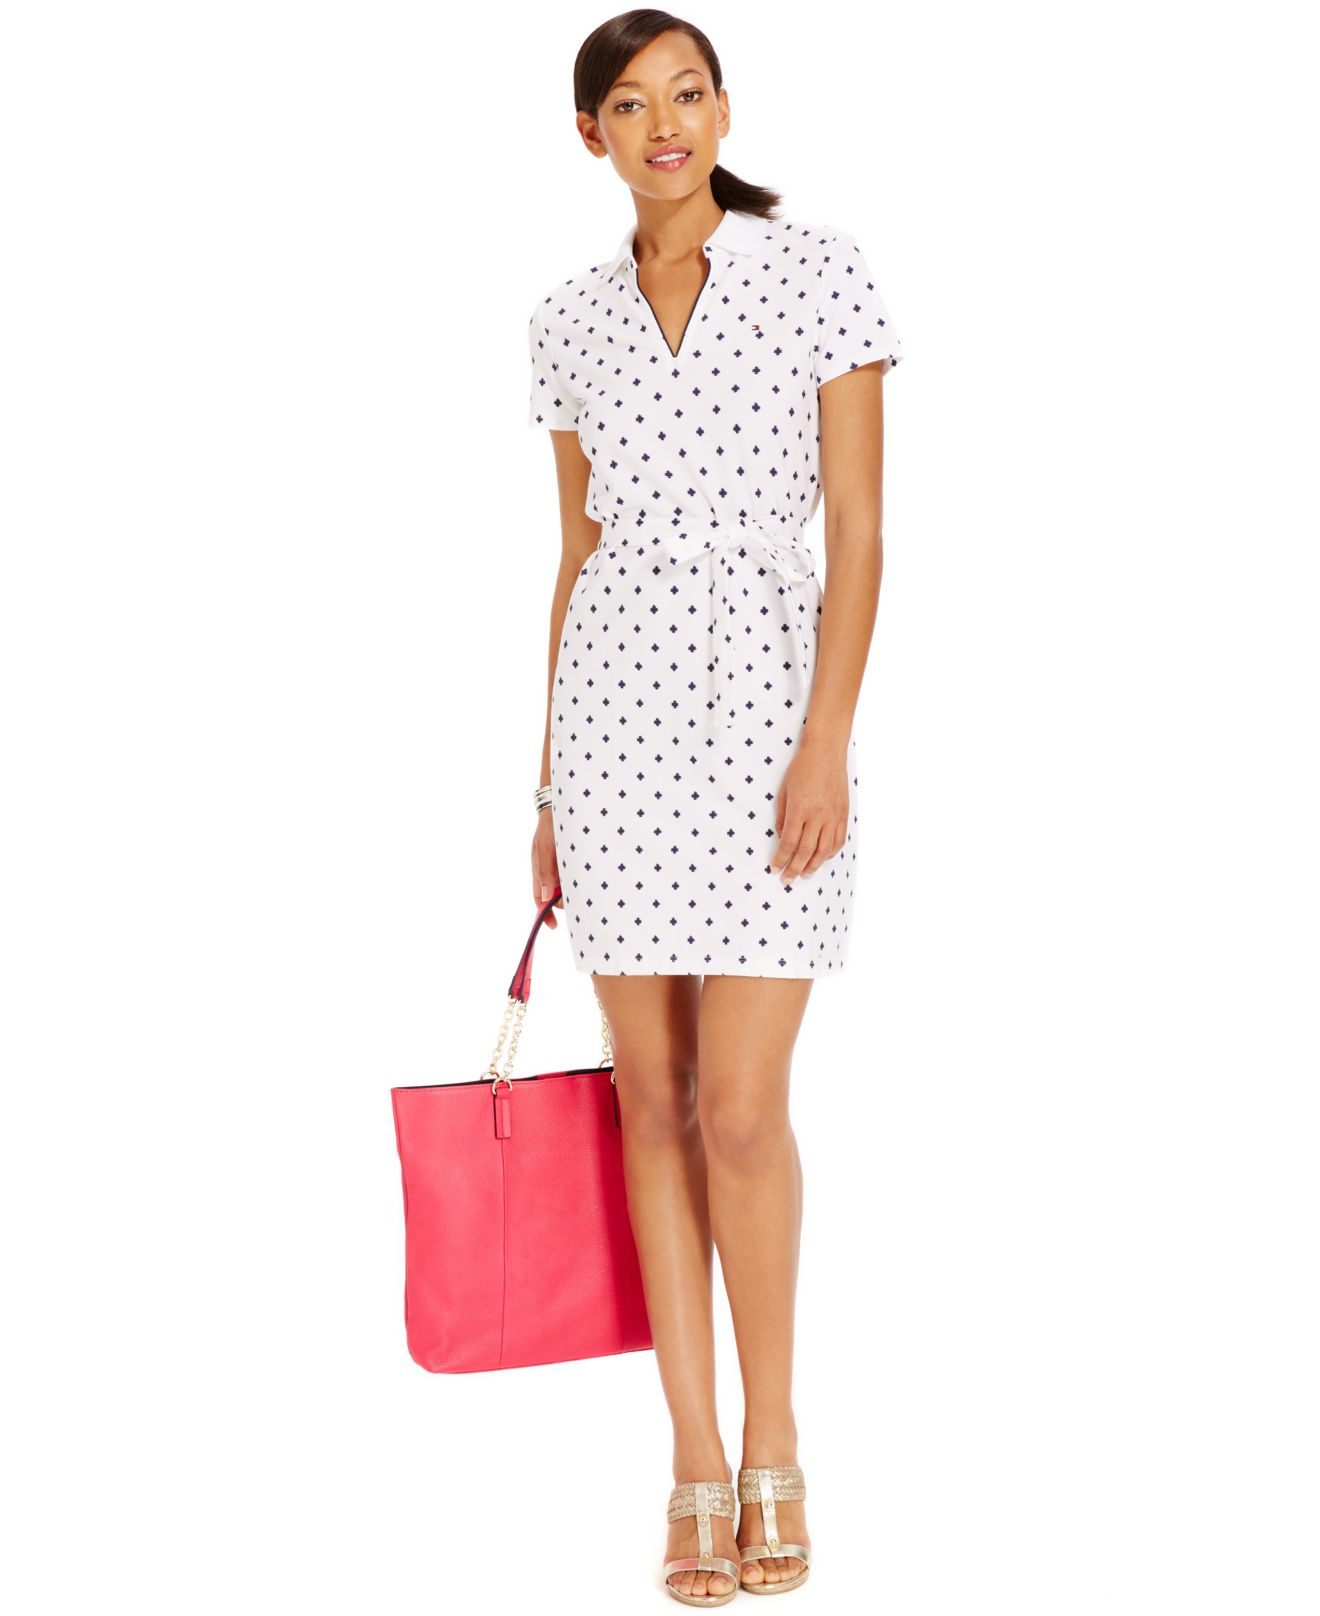 edf7c0fe1 Tommy Hilfiger Belted Samantha Polo Dress in White - Lyst